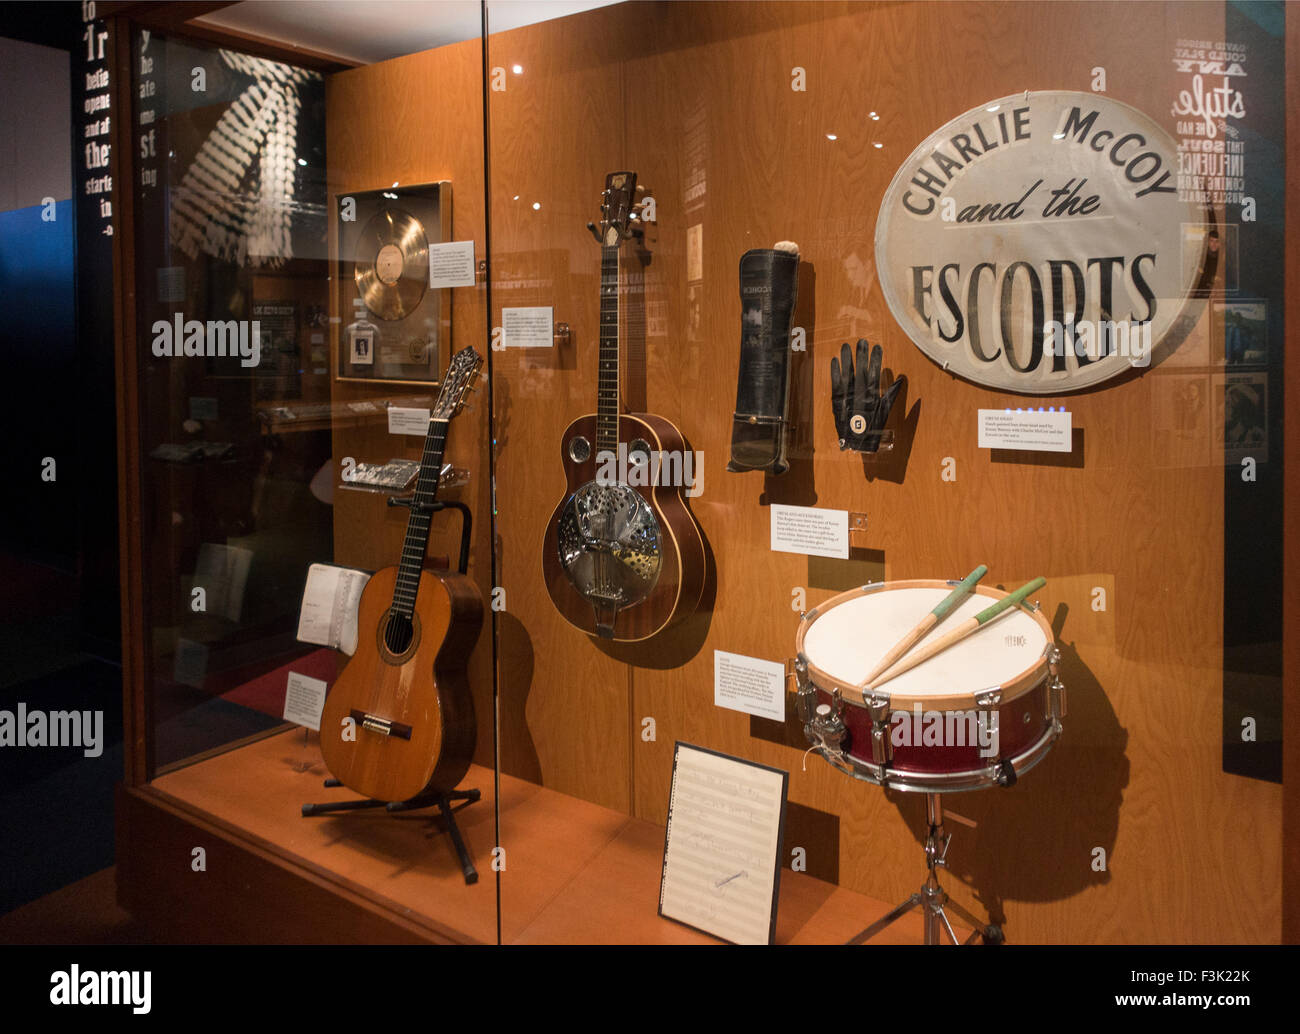 Country Music Artifacts Stock Photos & Country Music Artifacts Stock